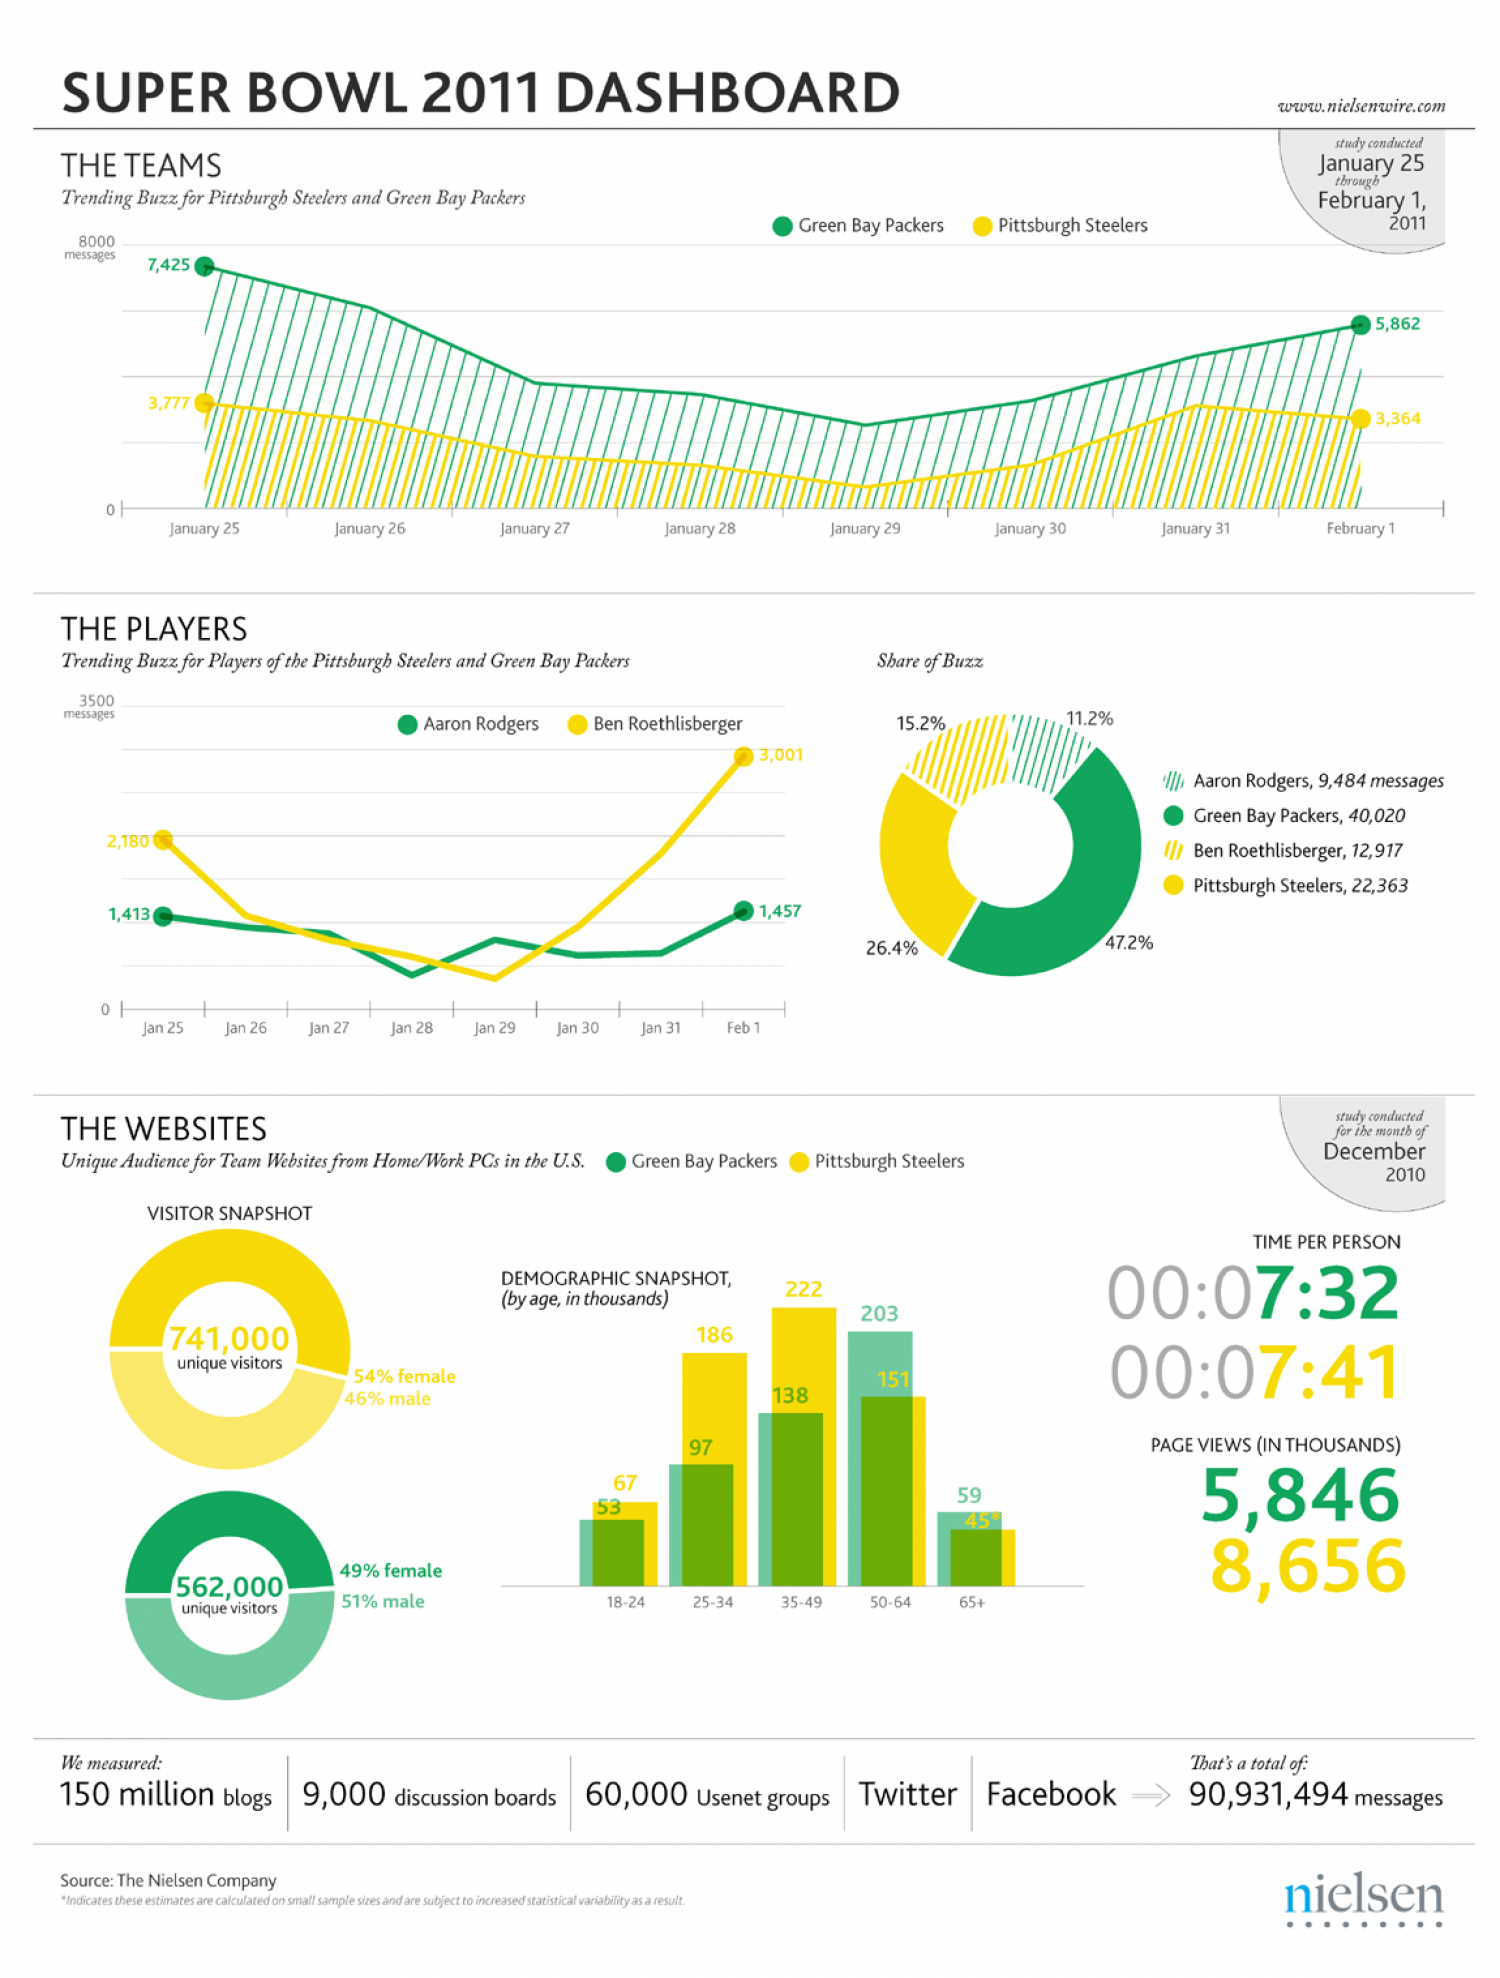 Super Bowl 2011: digital media dashboard Infographic